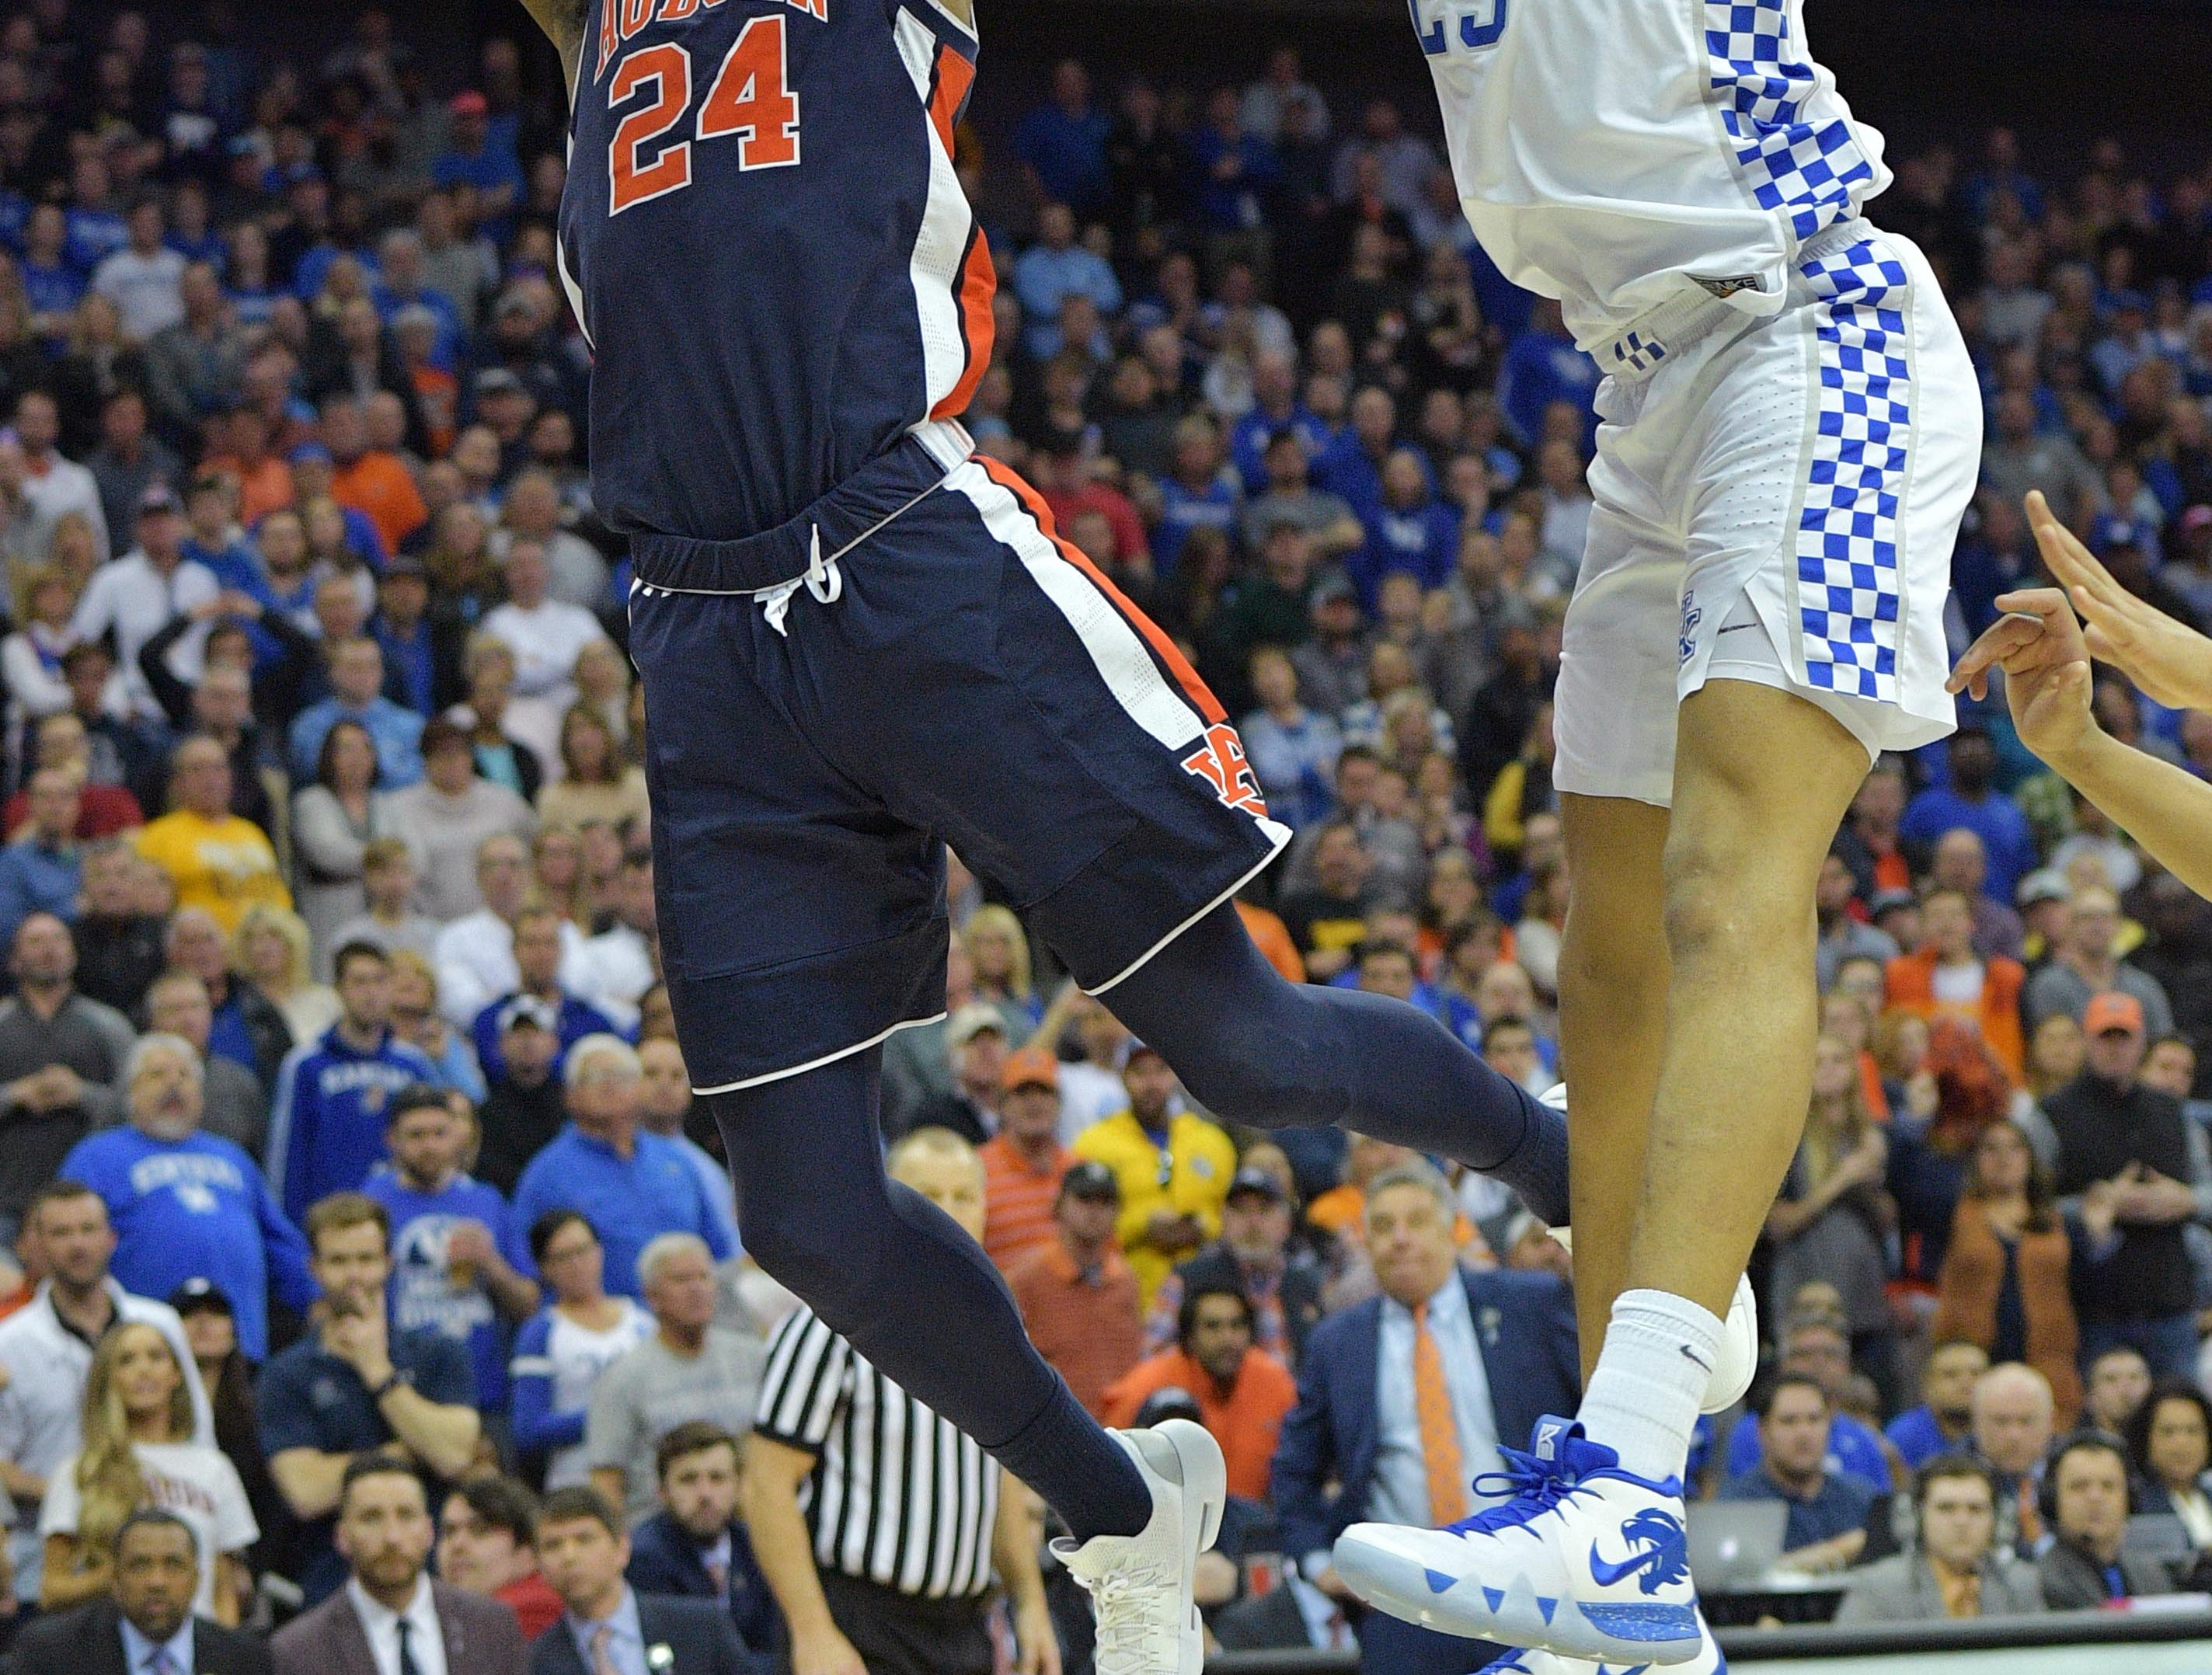 Mar 31, 2019; Kansas City, MO, United States; Auburn Tigers forward Anfernee McLemore (24) shoots against Kentucky Wildcats forward PJ Washington (25) during the second half in the championship game of the midwest regional of the 2019 NCAA Tournament at Sprint Center. Mandatory Credit: Denny Medley-USA TODAY Sports